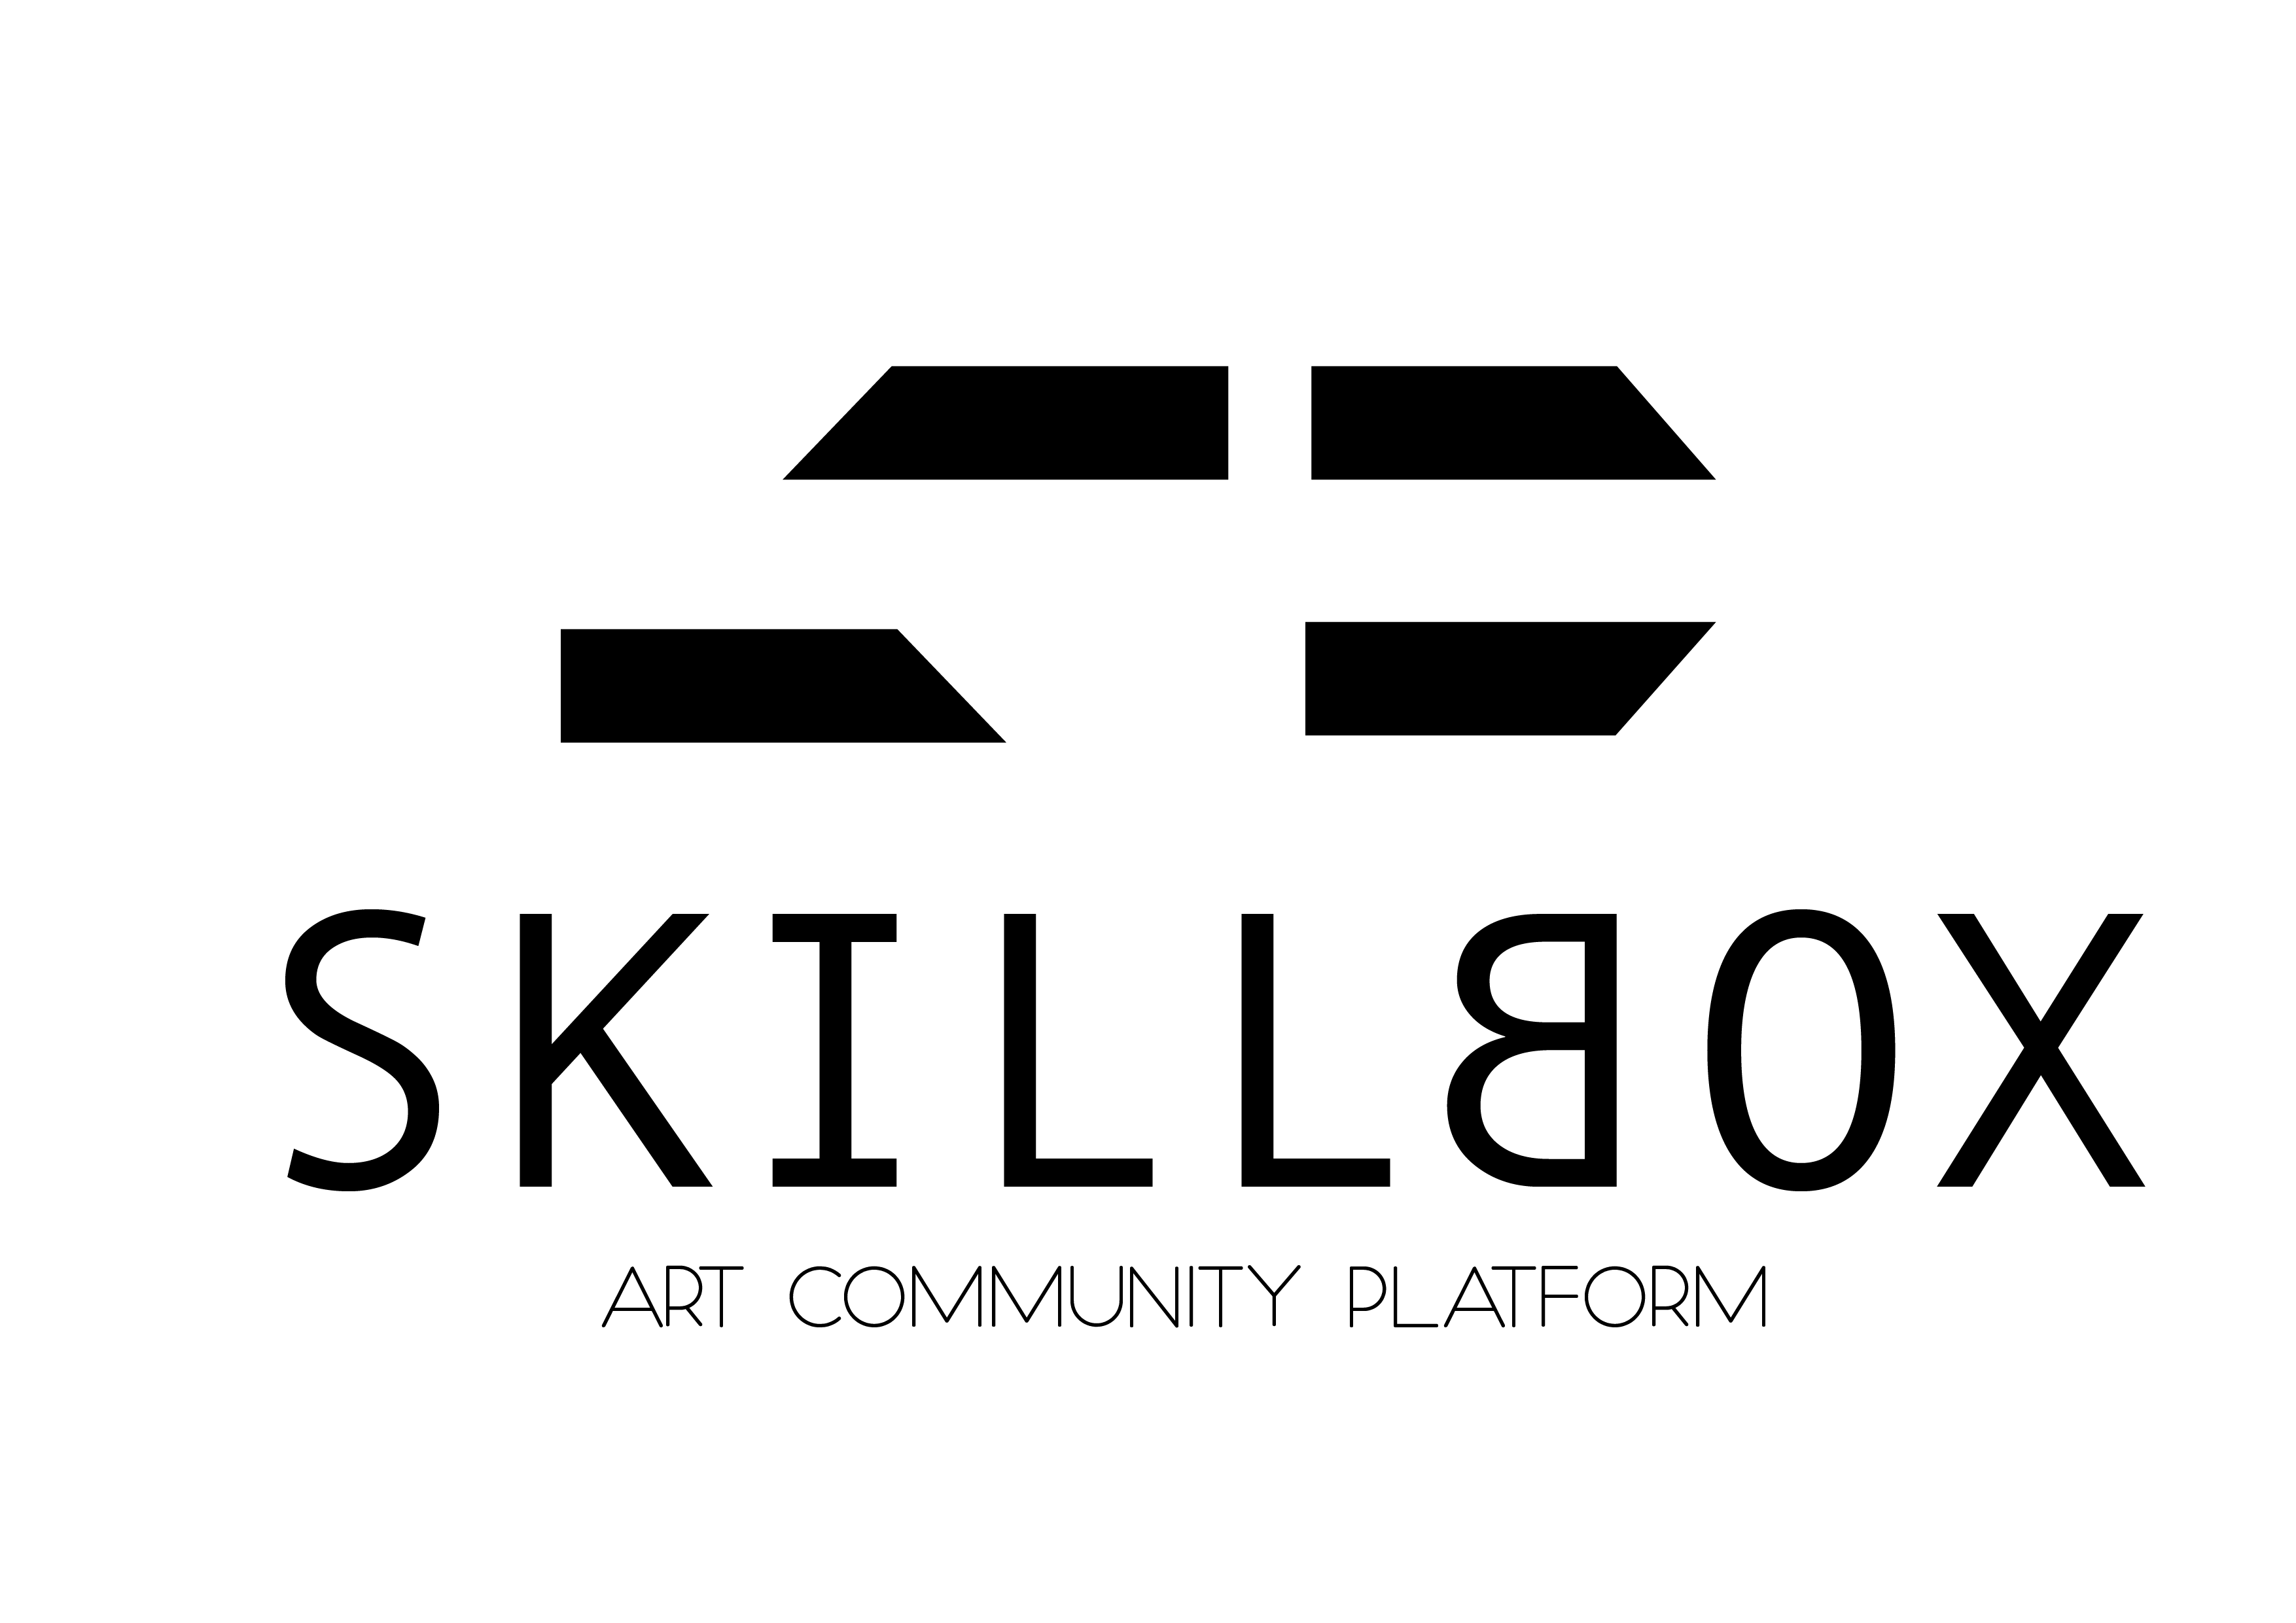 Skillbox - An Artist management platform